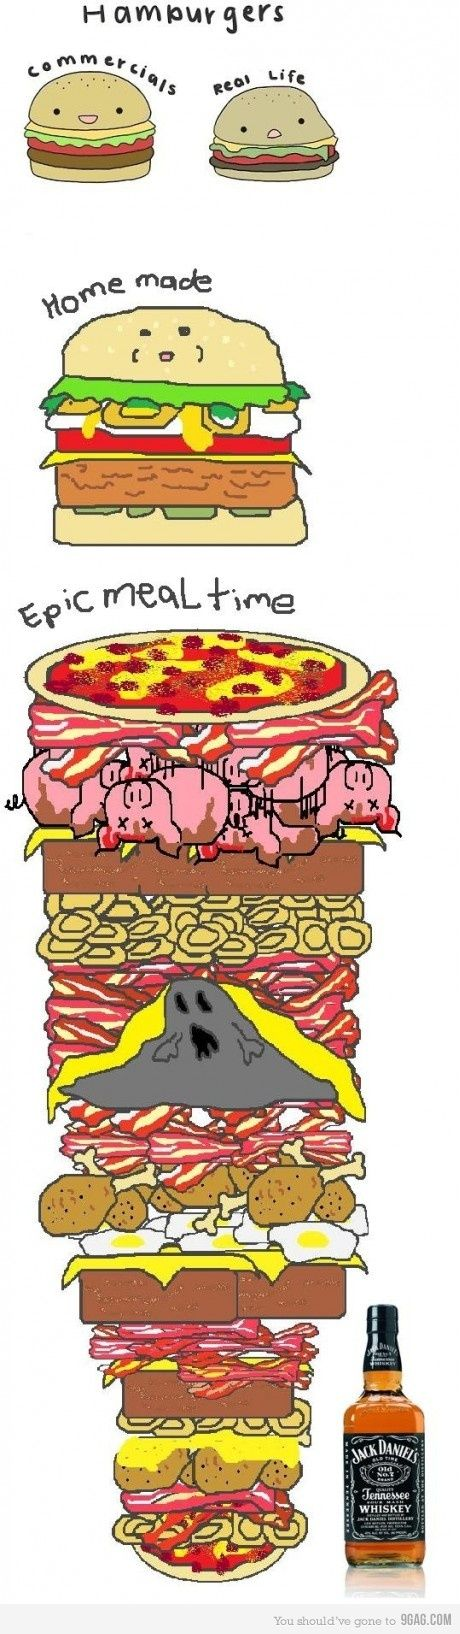 There's a reason why it's called EPIC Meal Time.